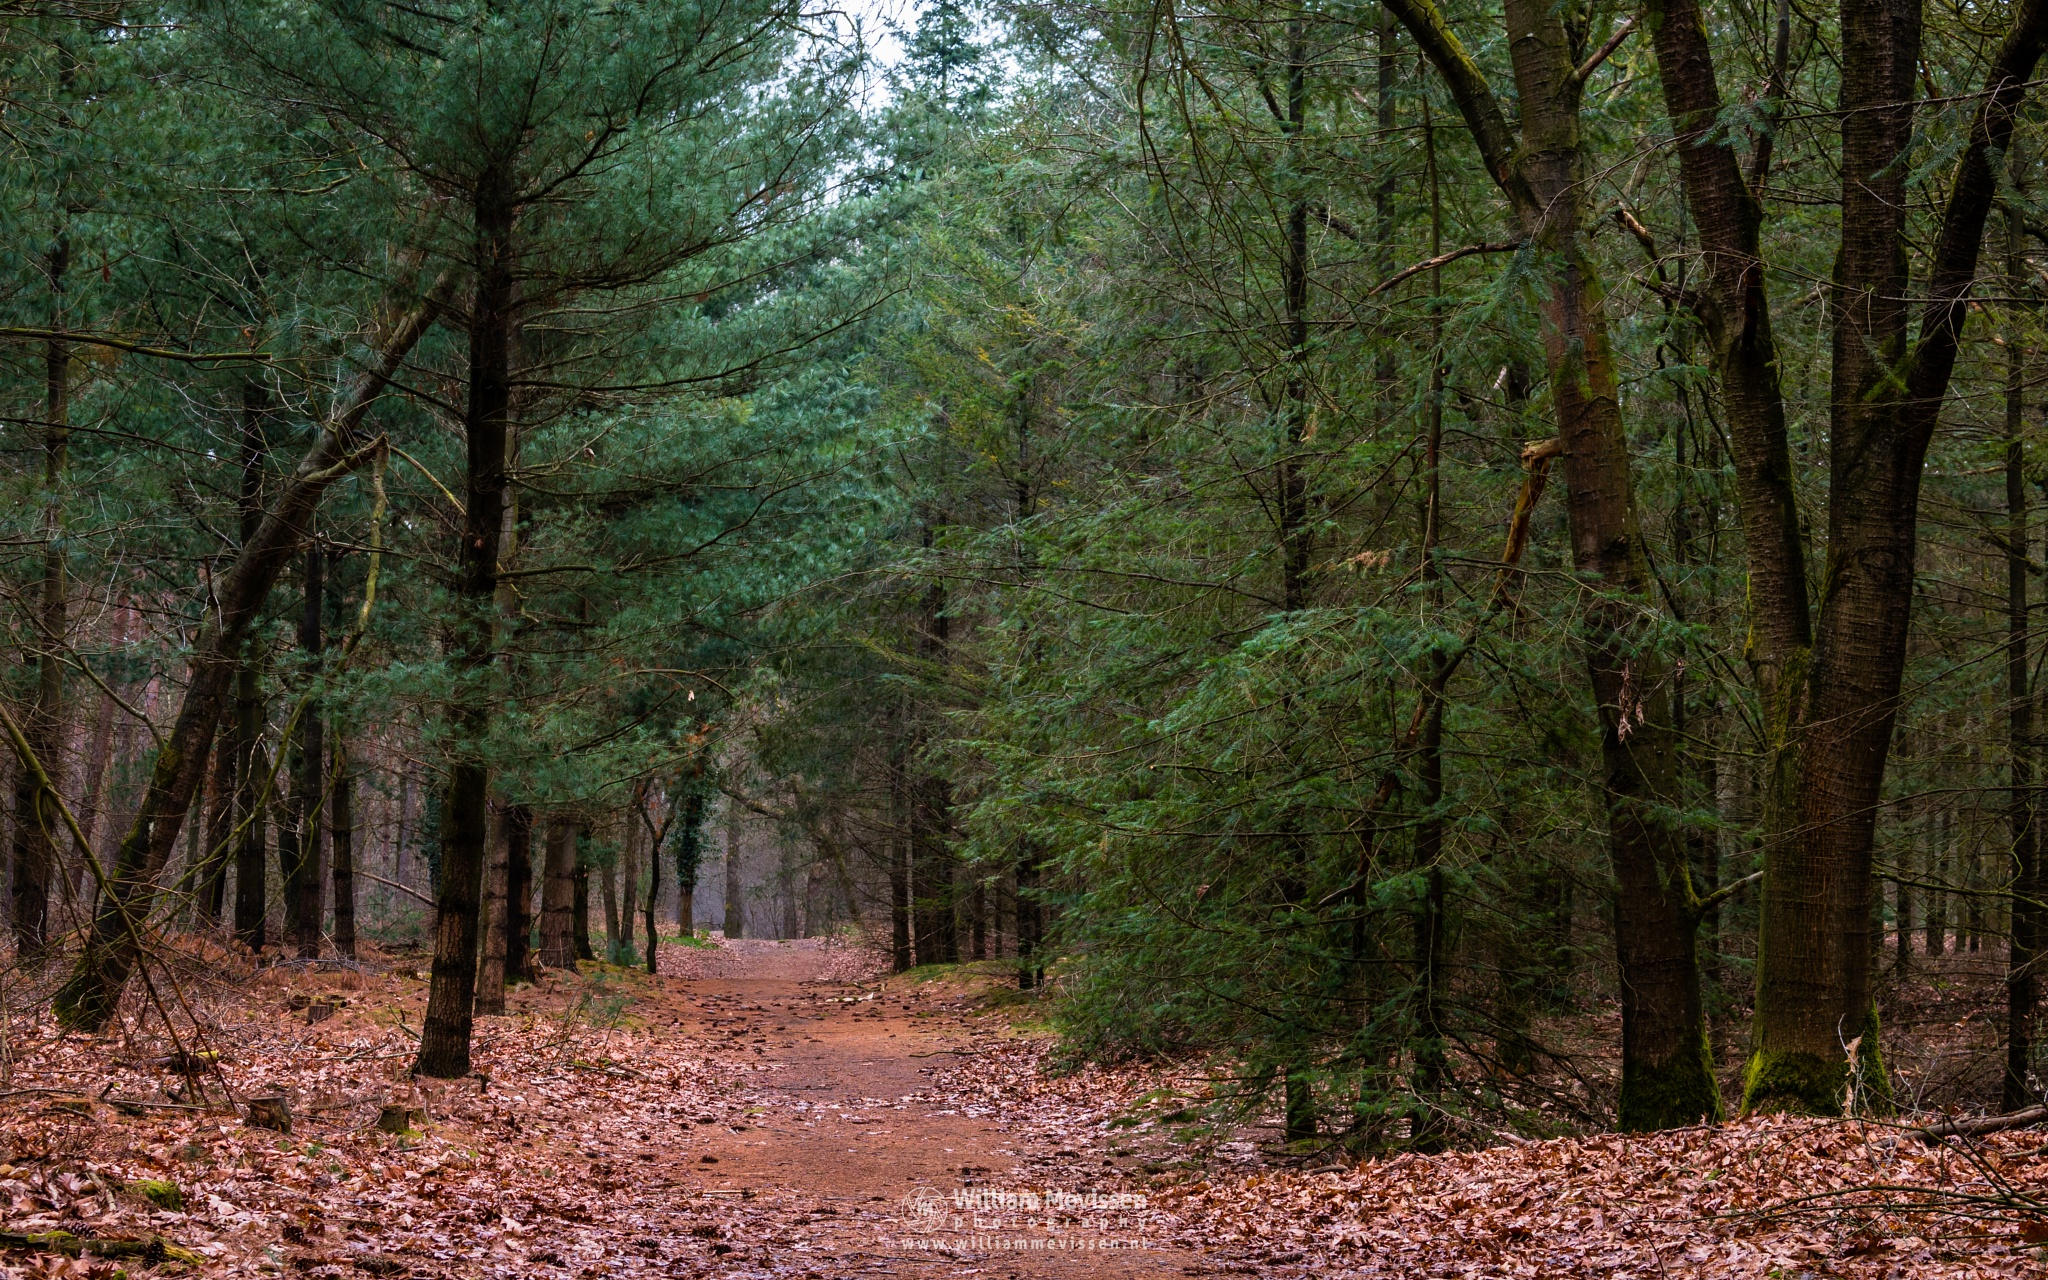 Path Into The Woods by William Mevissen